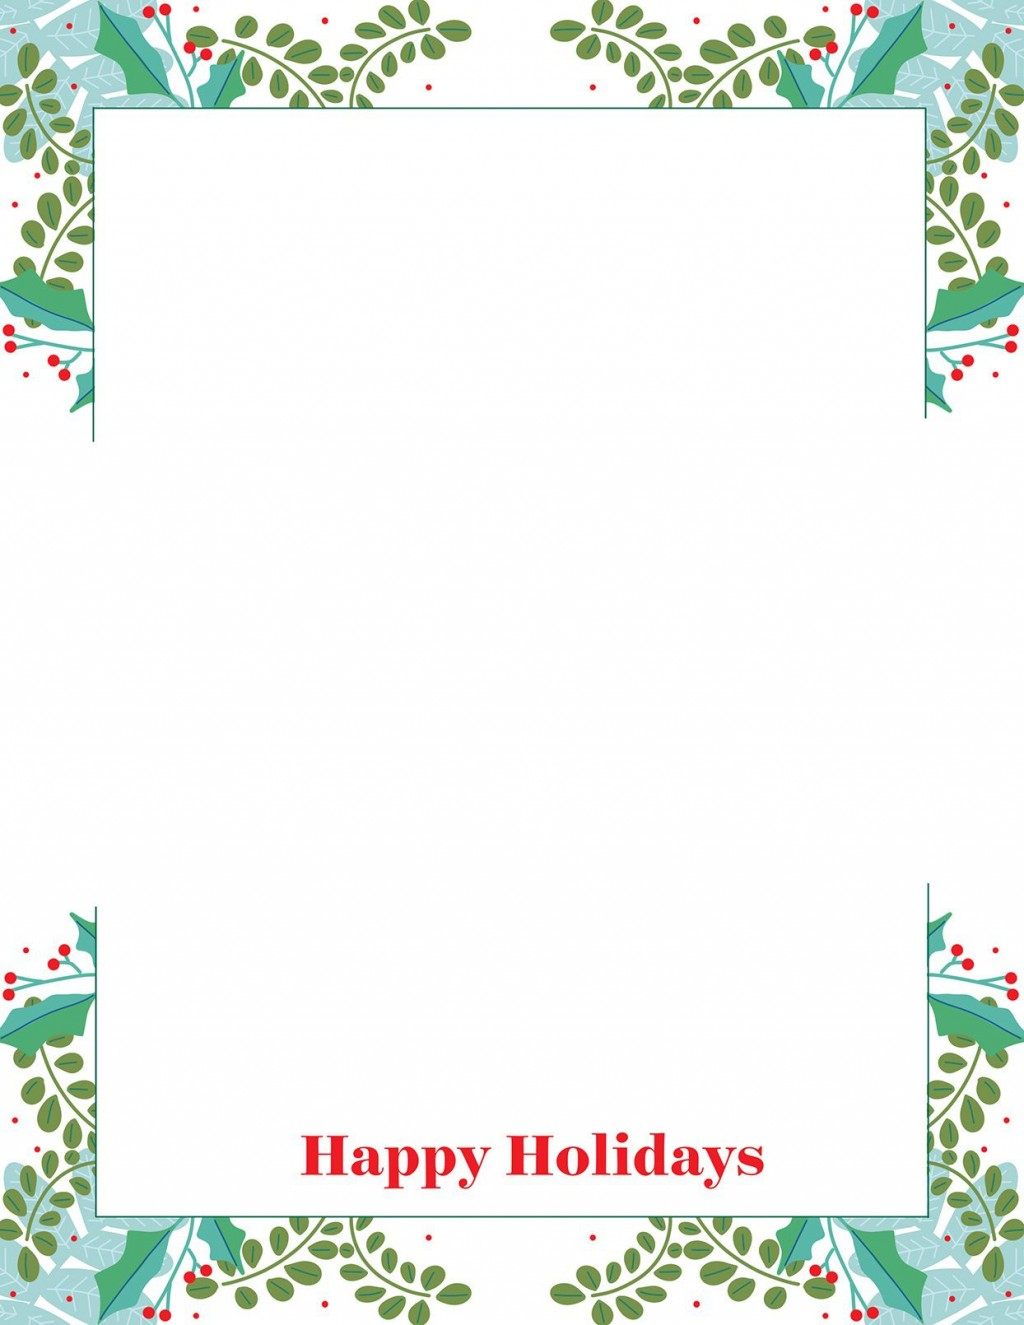 013 Surprising Free Christma Letter Template For Microsoft Word Photo  Downloadable NewsletterLarge